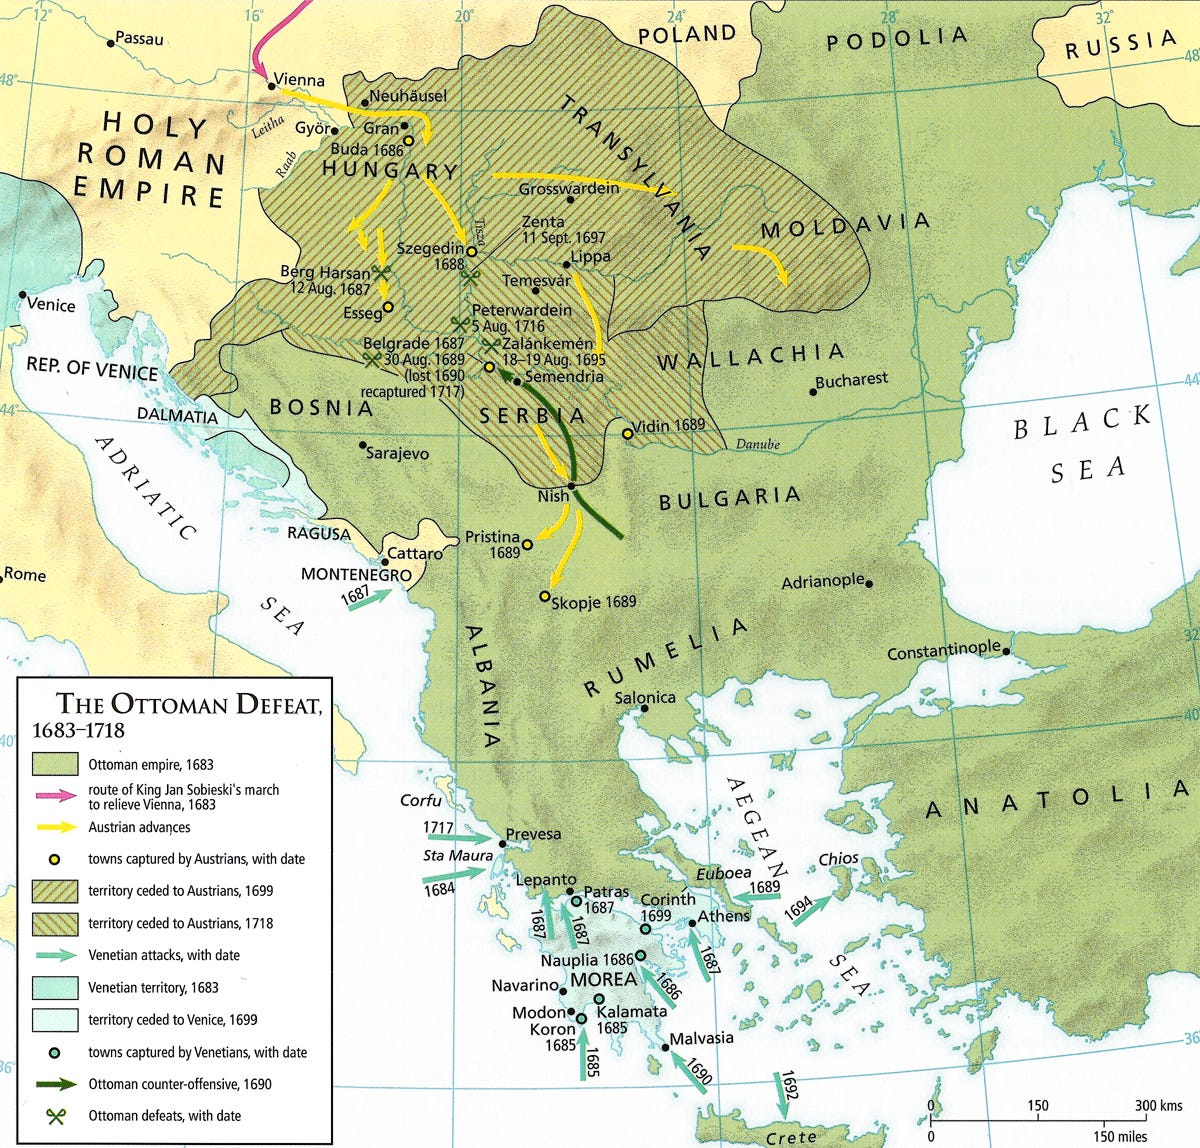 Map - Ottoman Defeat 1683-1718